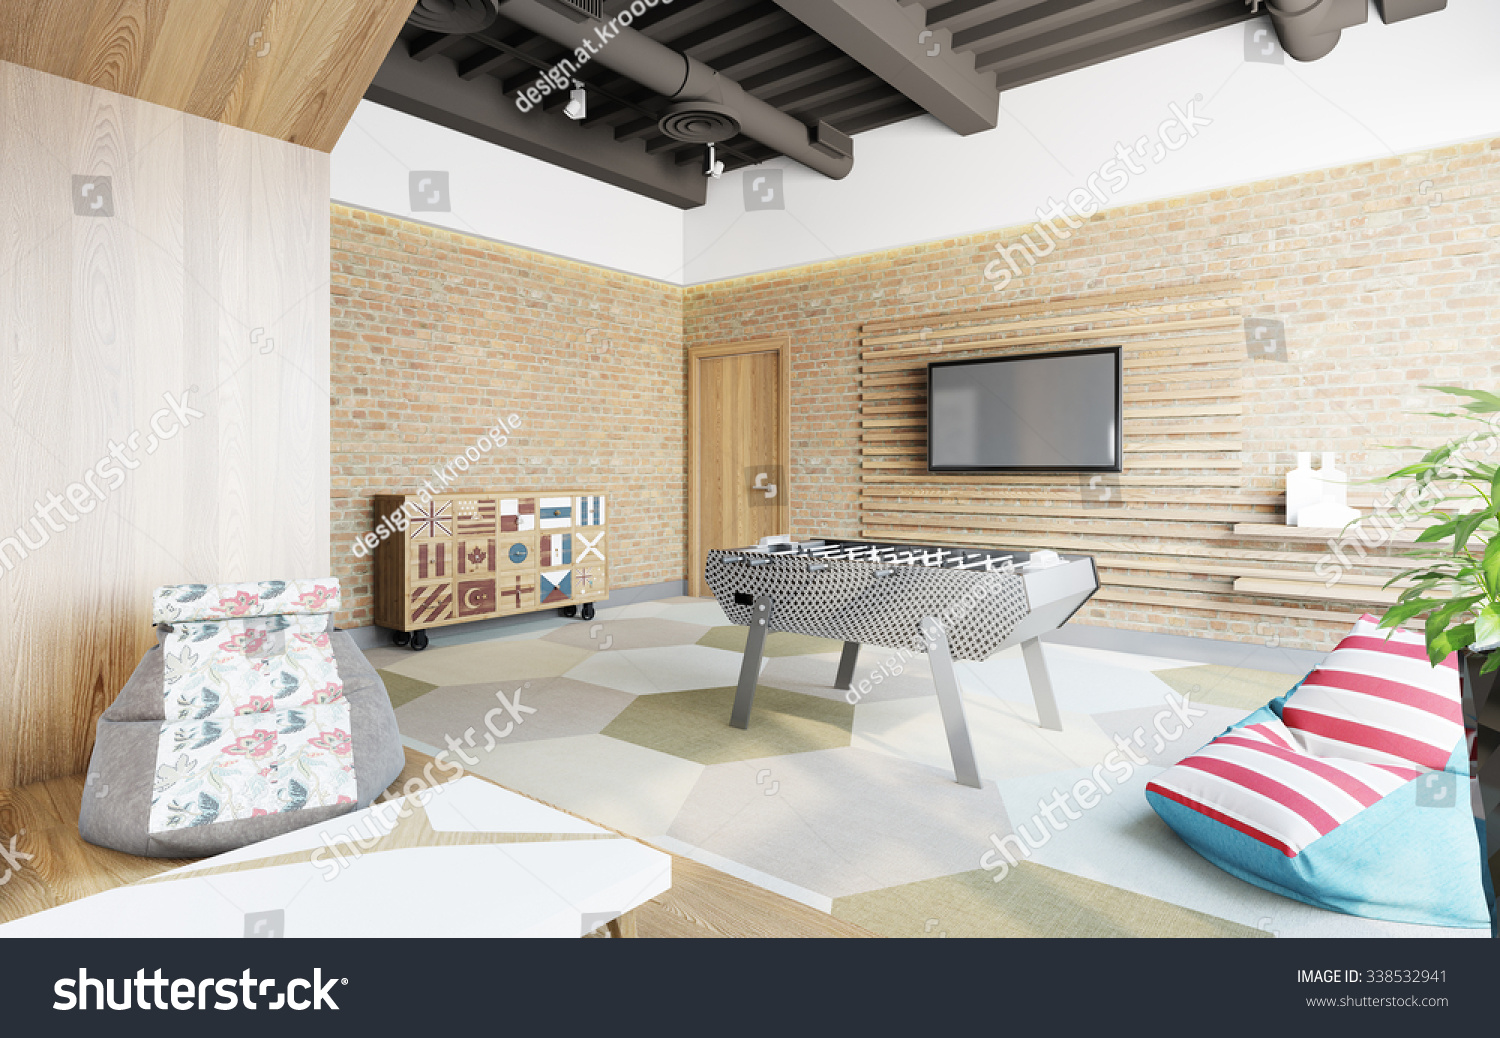 office lounge design. Office Lounge With Brick Wall 3d Rendering Design